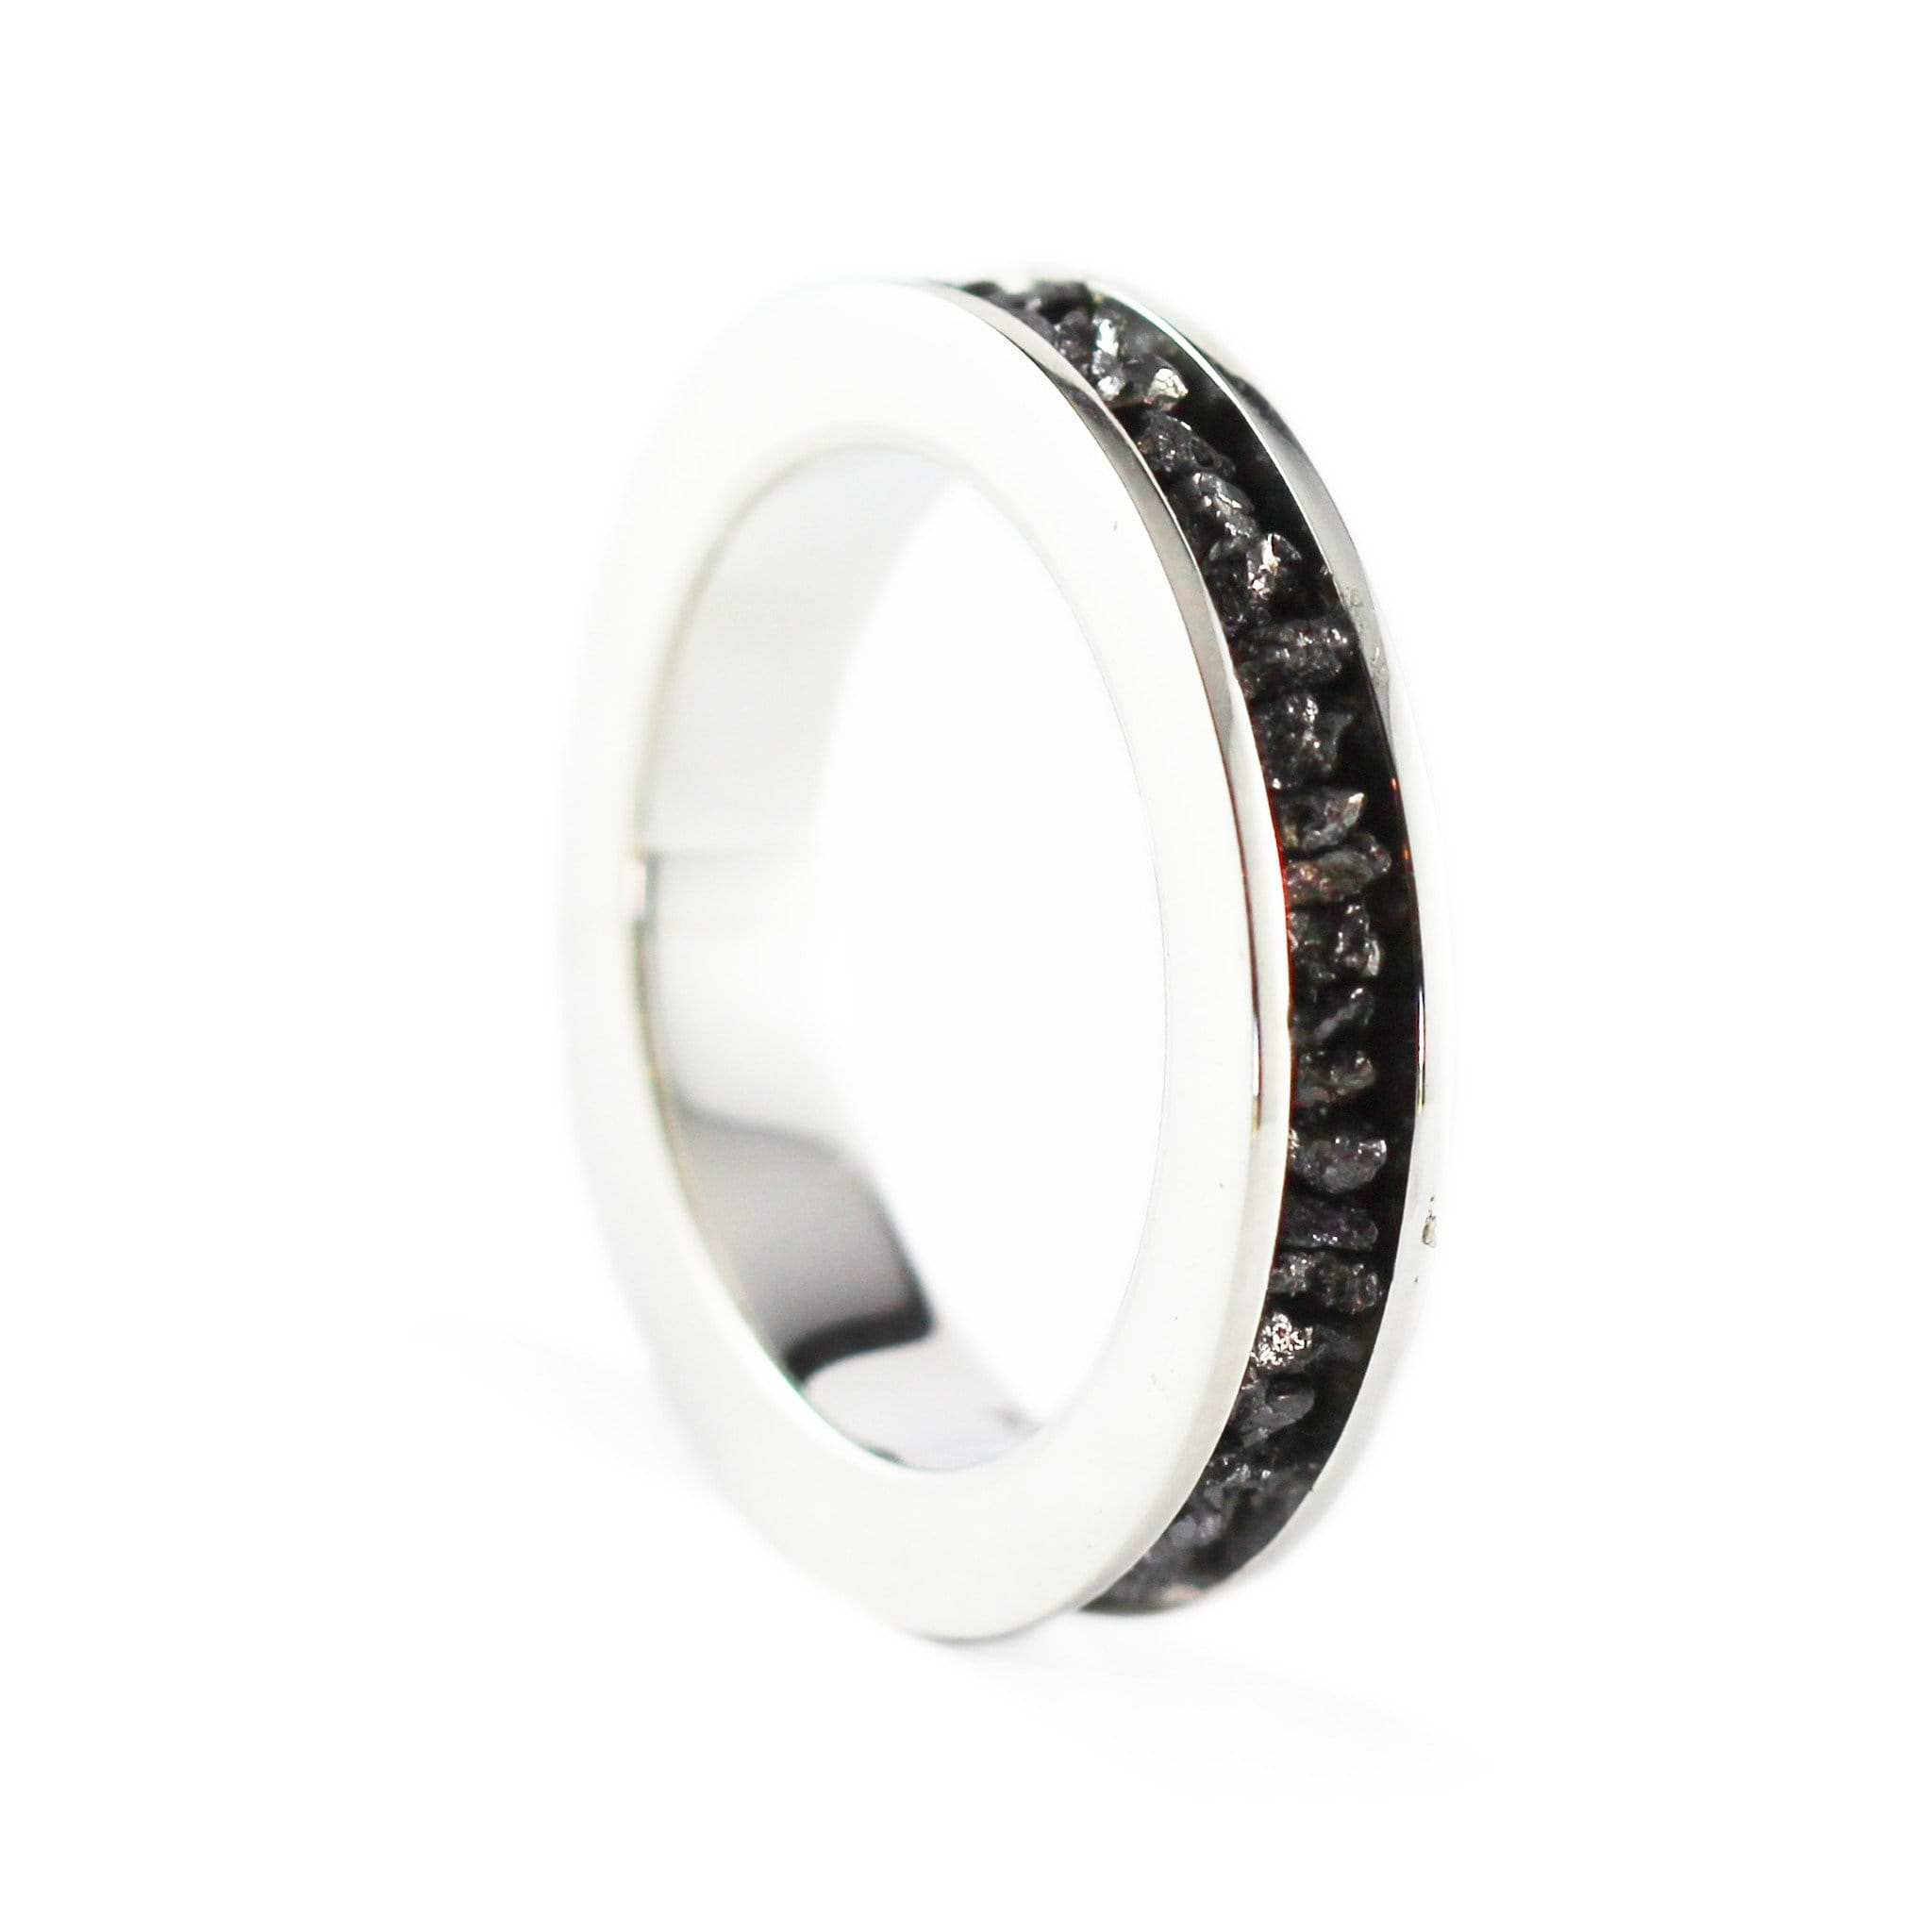 ca men wedding amazon rings black b jewelry unisex band titanium